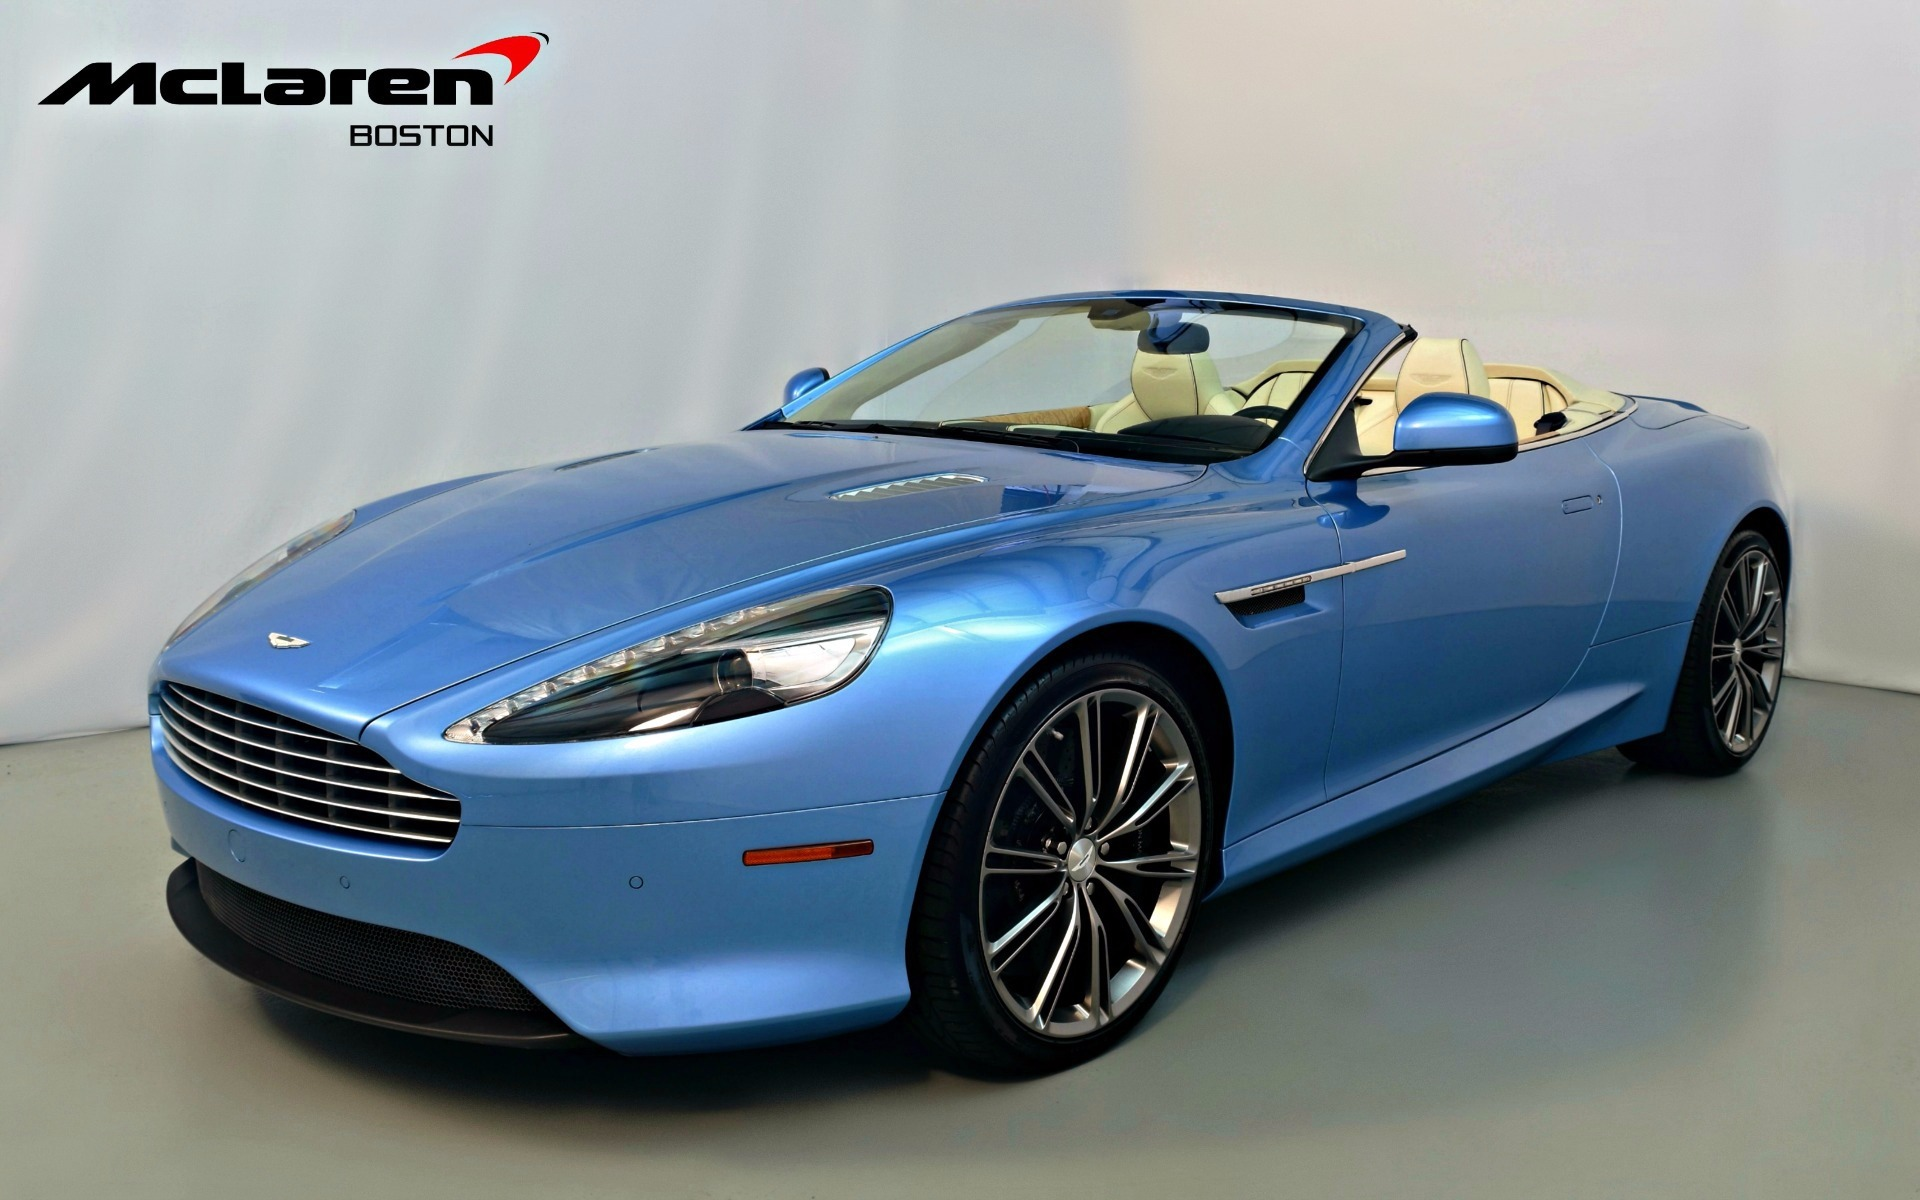 2015 aston martin db9 volante for sale in norwell ma b16567 mclaren boston. Black Bedroom Furniture Sets. Home Design Ideas